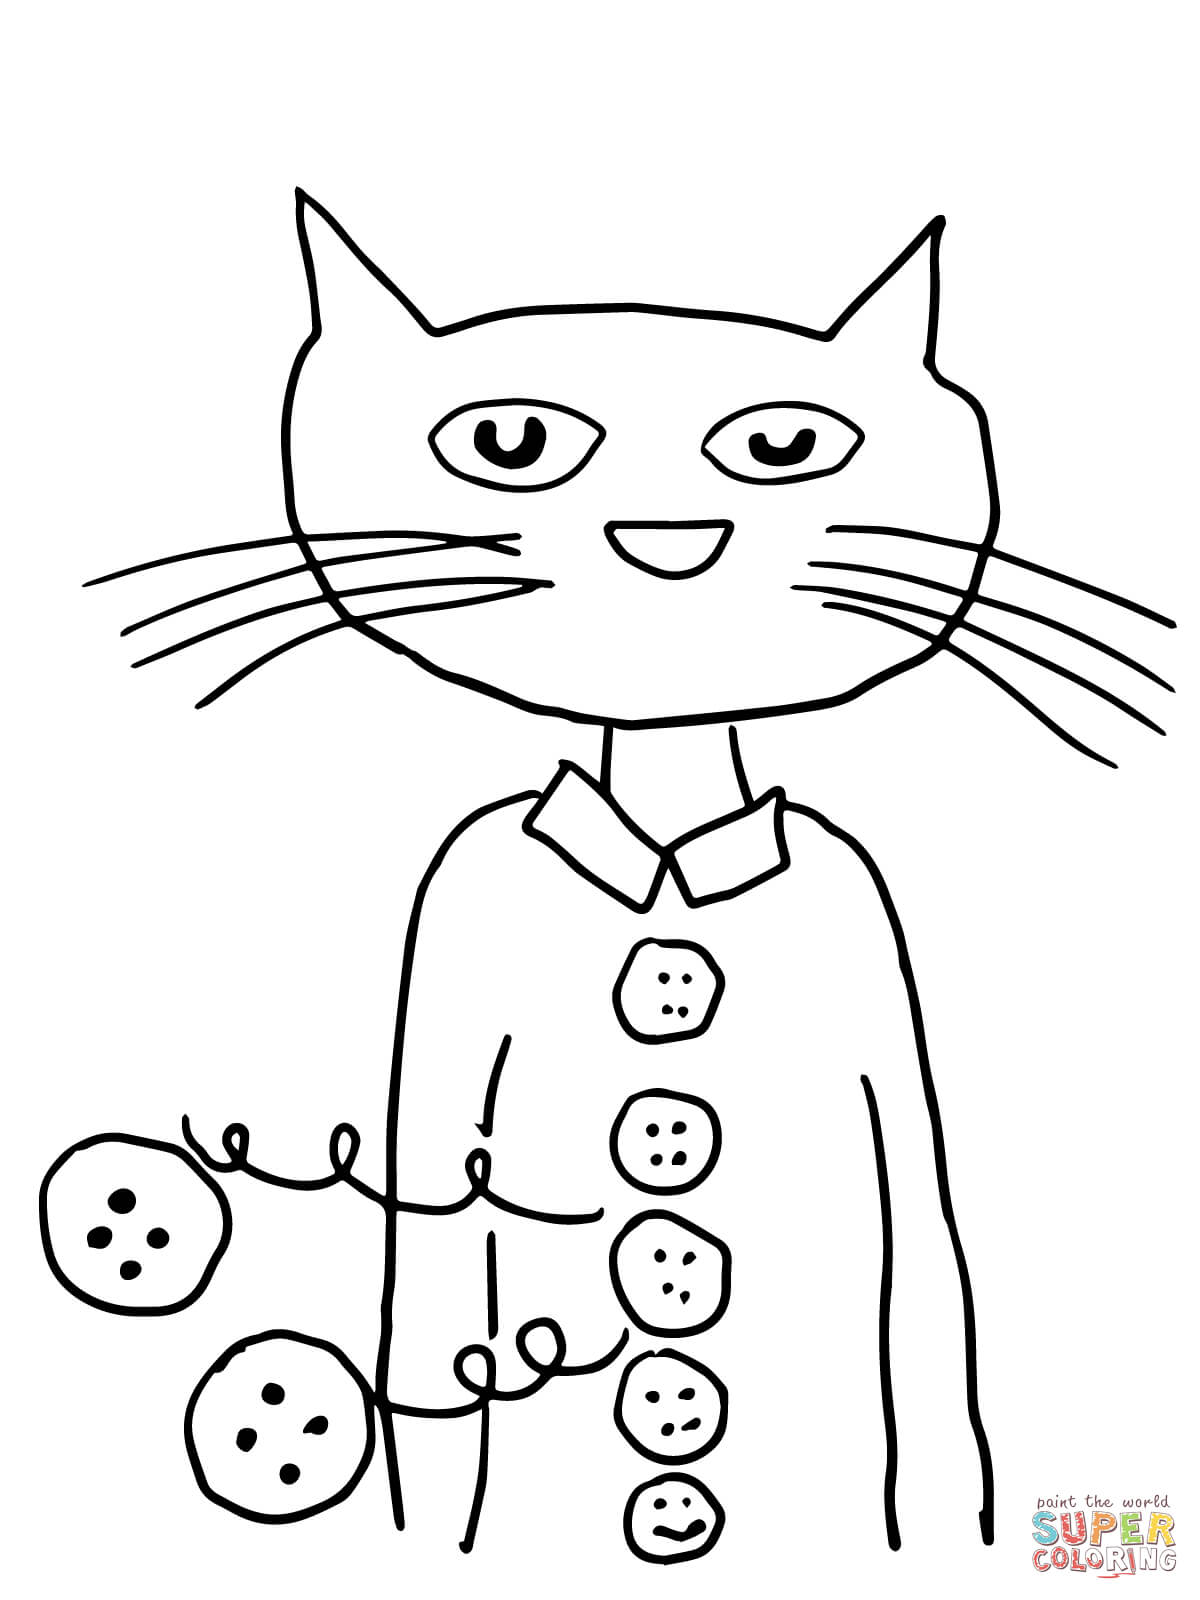 Pete The Cat Groovy Buttons Coloring Page